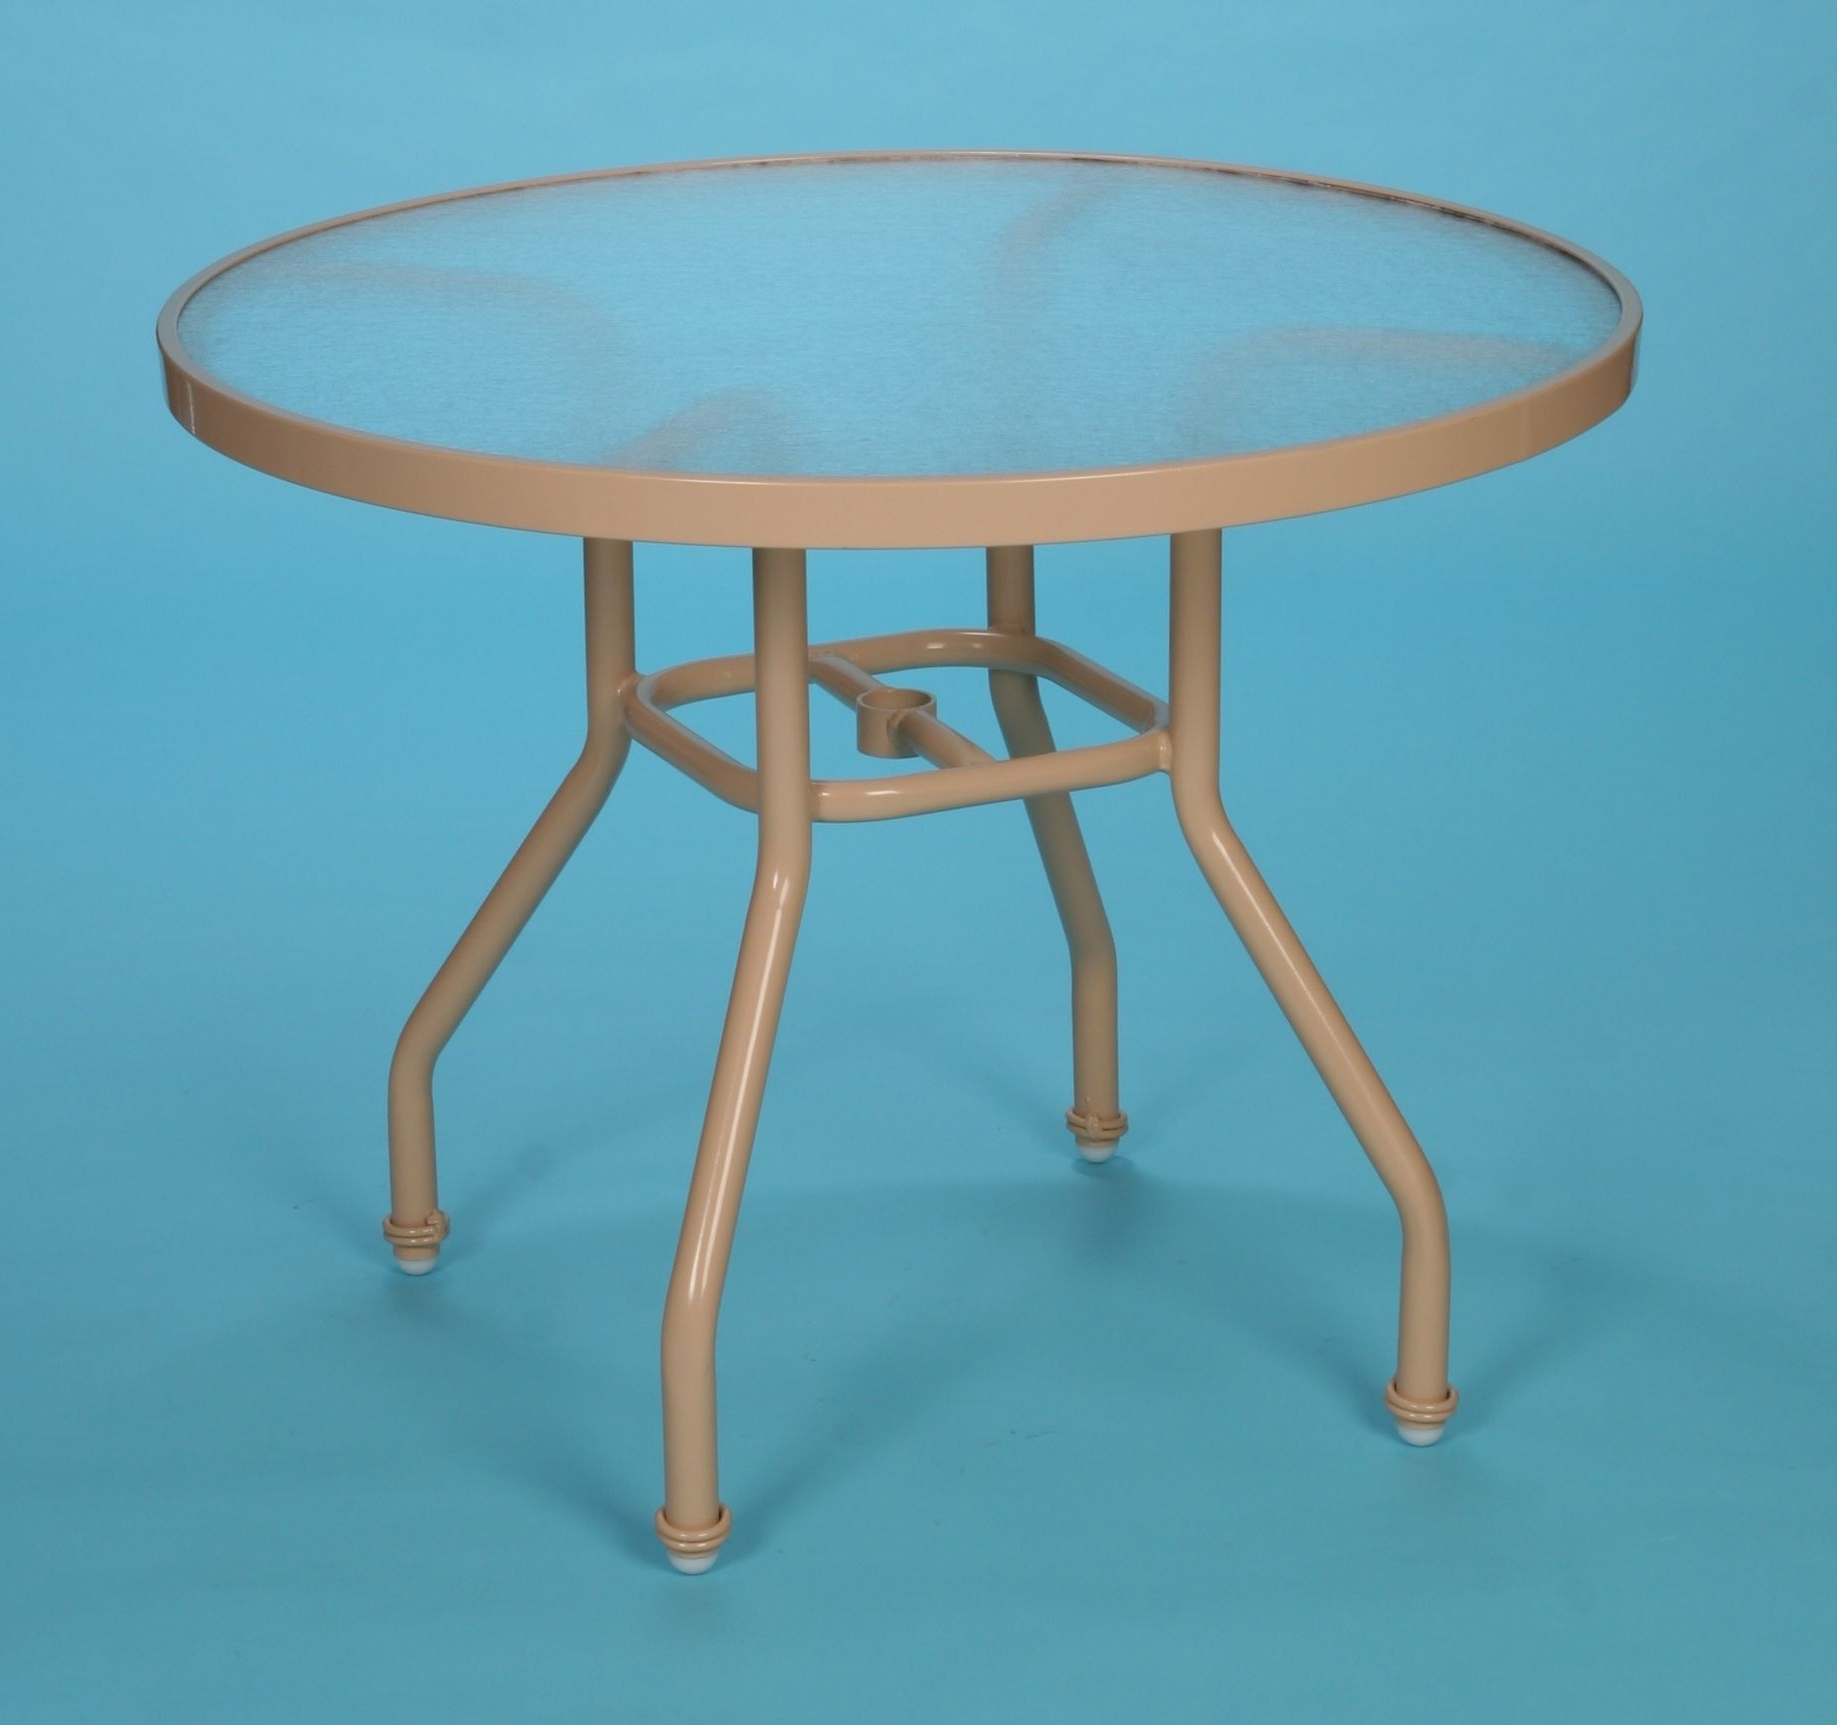 Patio Furniture In Round Acrylic Dining Tables (View 17 of 25)